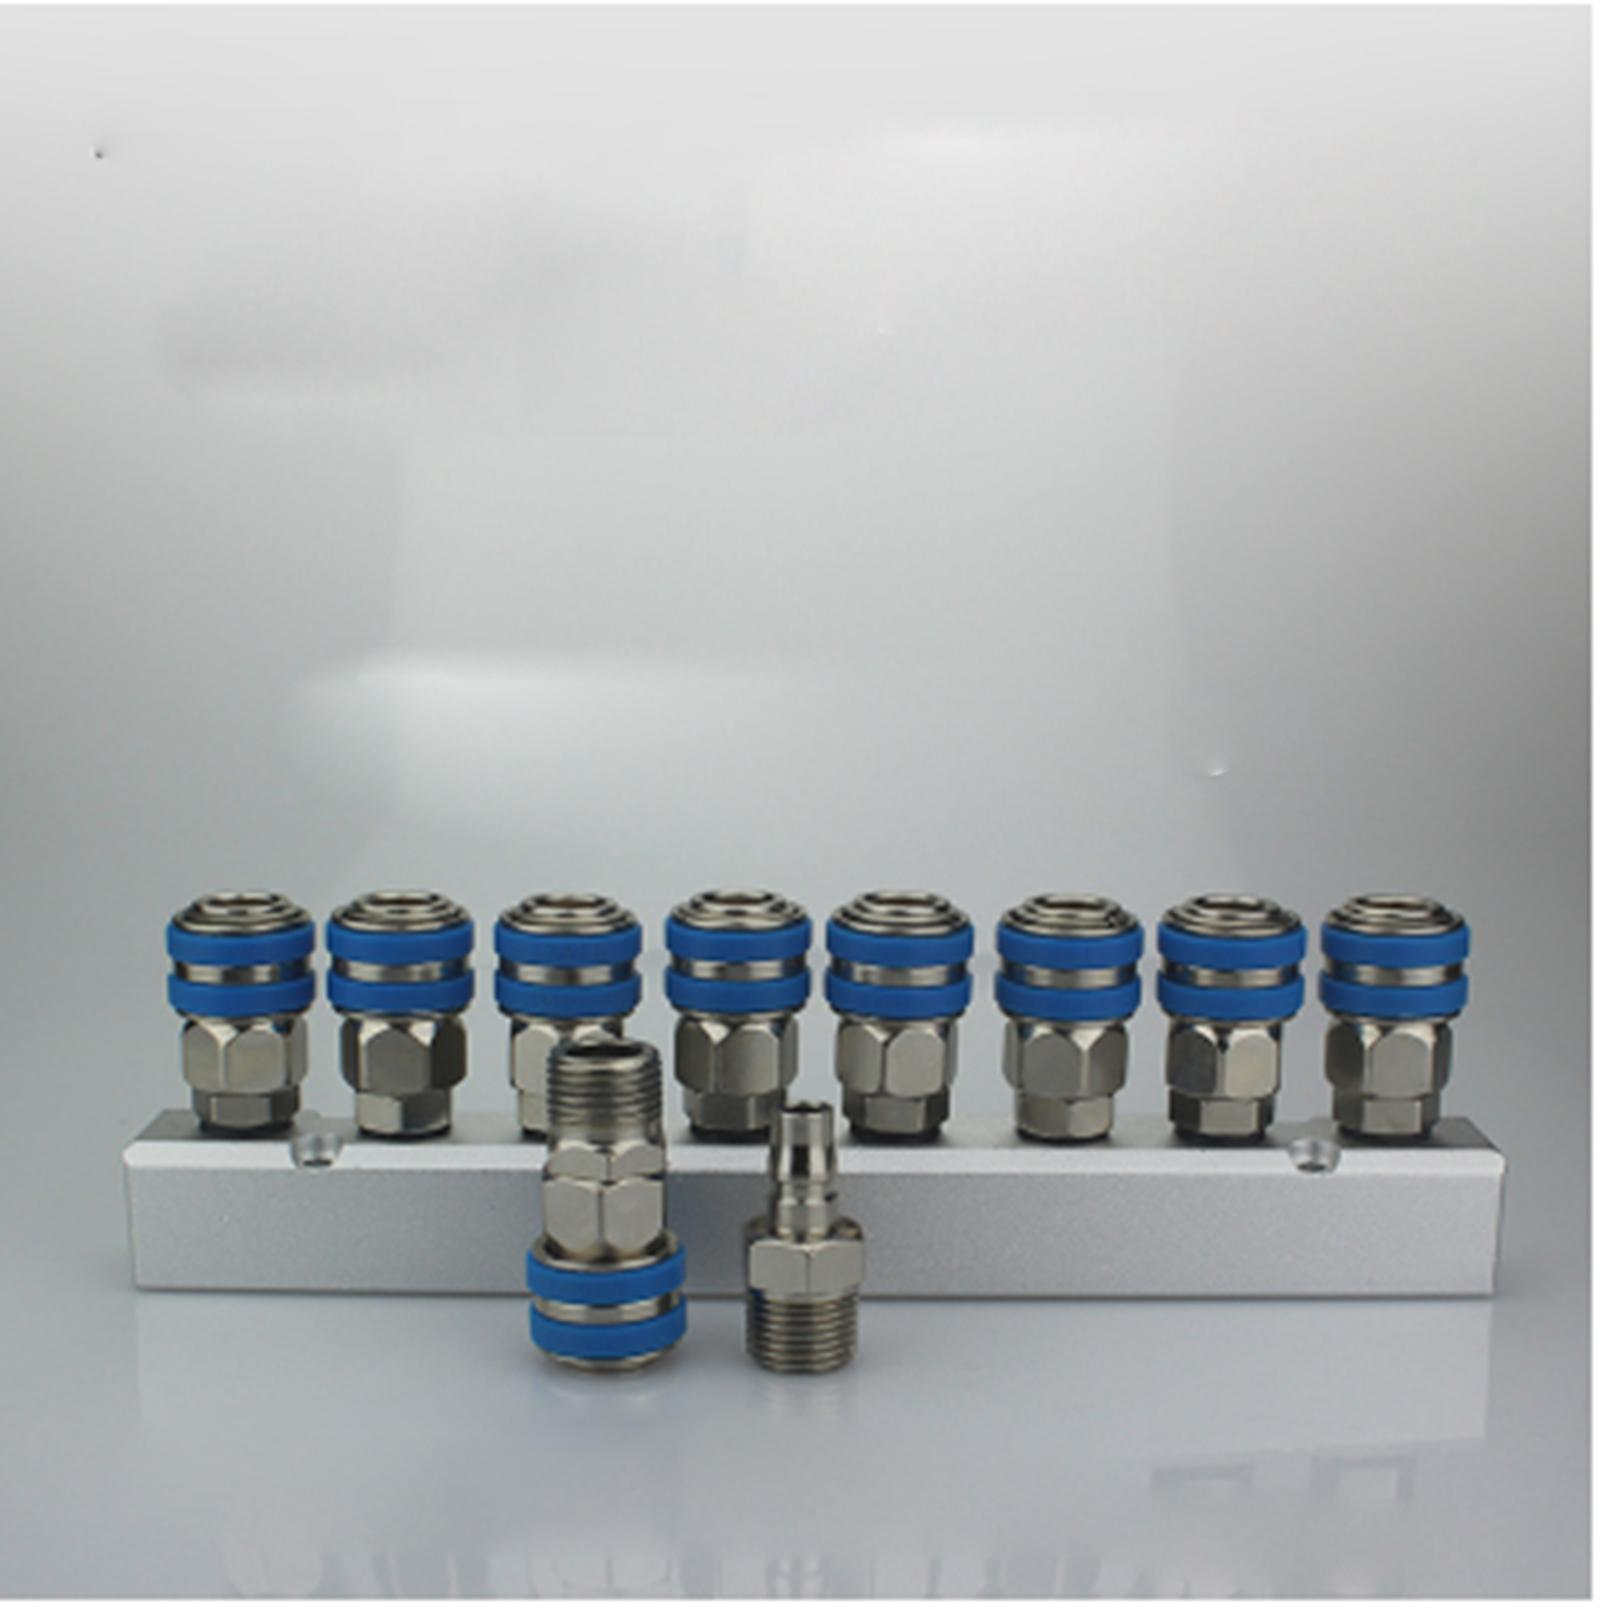 C Type Socket Out 8 Way Pneumatic Air Solid Aluminum Manifold Block Splitter turquoise color air pneumatic cylinder 9 way aluminum manifold block splitter